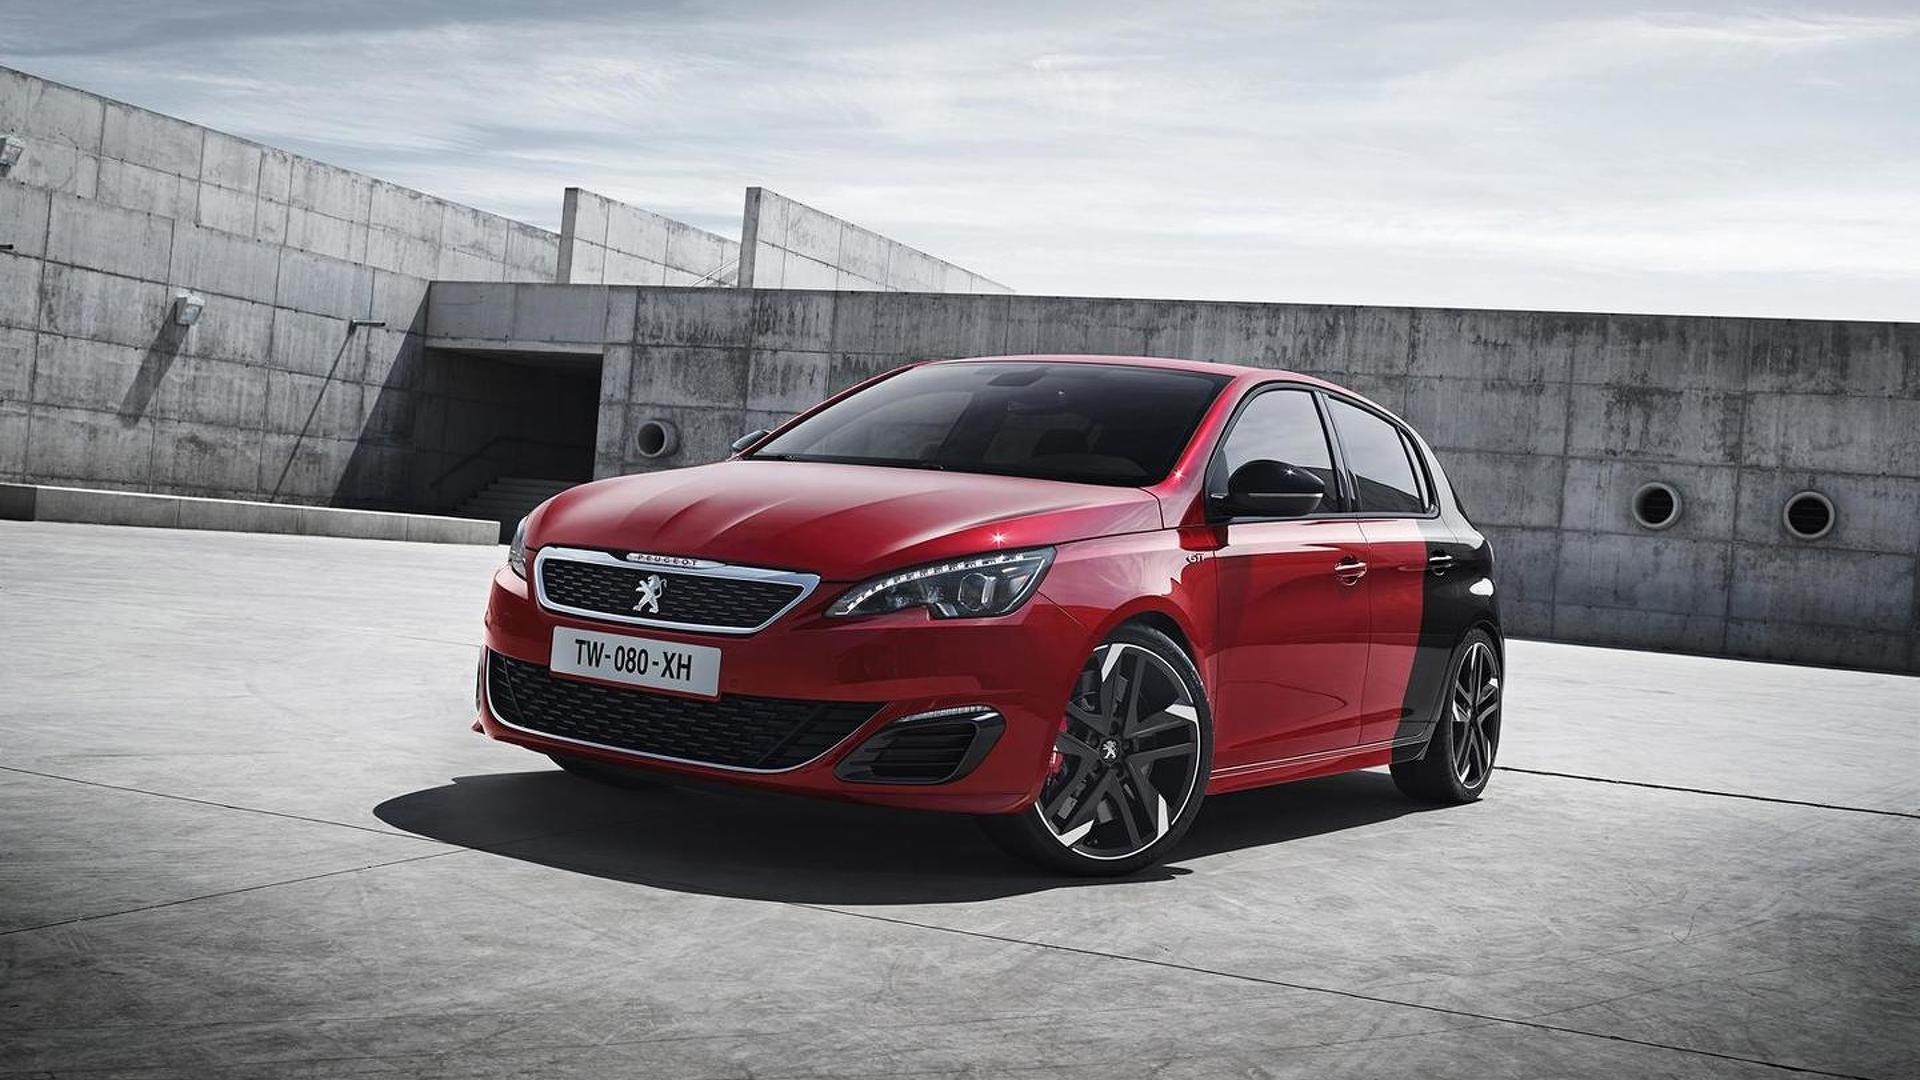 Peugeot 308 GTi goes official with up to 270 PS and limited-slip ...